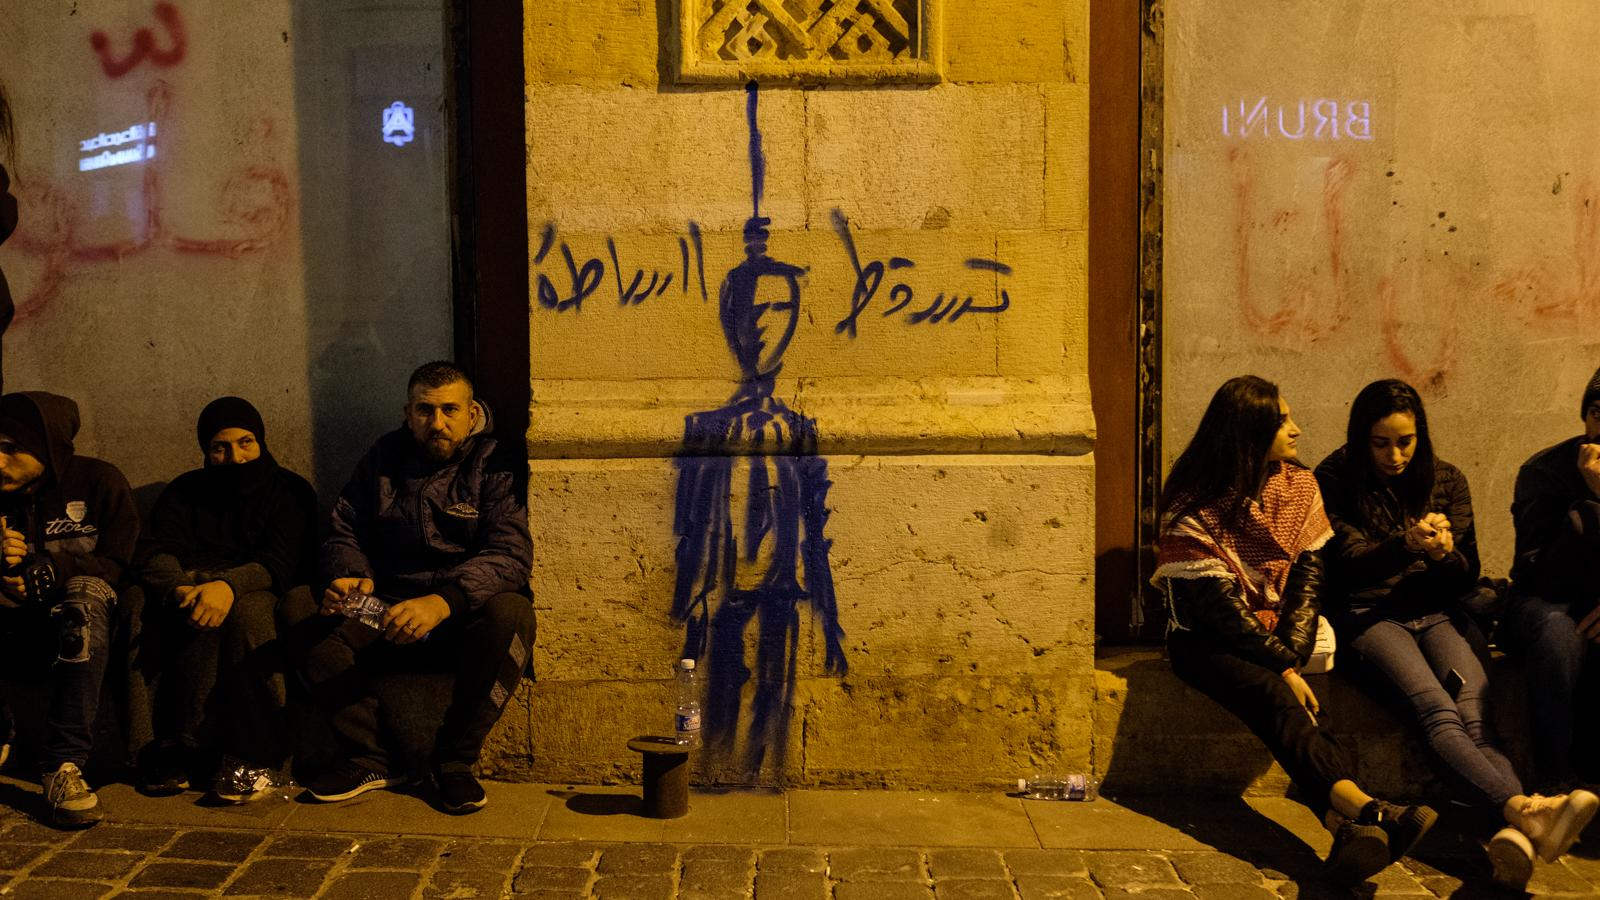 Protesters rest beside graffiti depicting the hanging of an authority figure. Downtown Beirut, Lebanon. December 15, 2019. (Rita Kabalan/The Public Source)